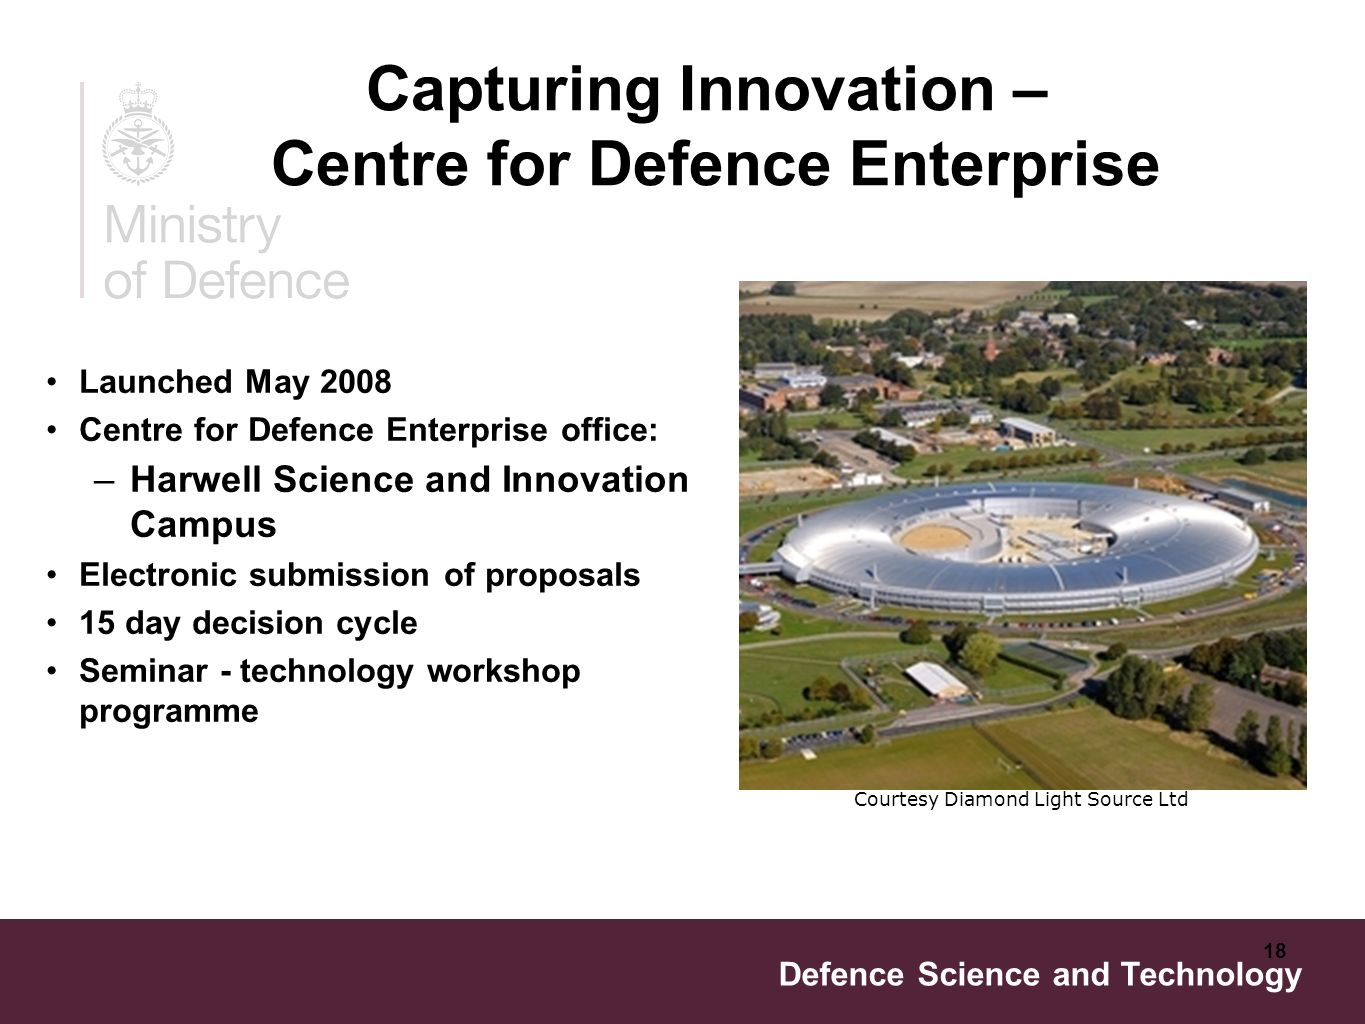 Defence Science and Technology 18 Launched May 2008 Centre for Defence Enterprise office: –Harwell Science and Innovation Campus Electronic submission of proposals 15 day decision cycle Seminar - technology workshop programme Courtesy Diamond Light Source Ltd Capturing Innovation – Centre for Defence Enterprise